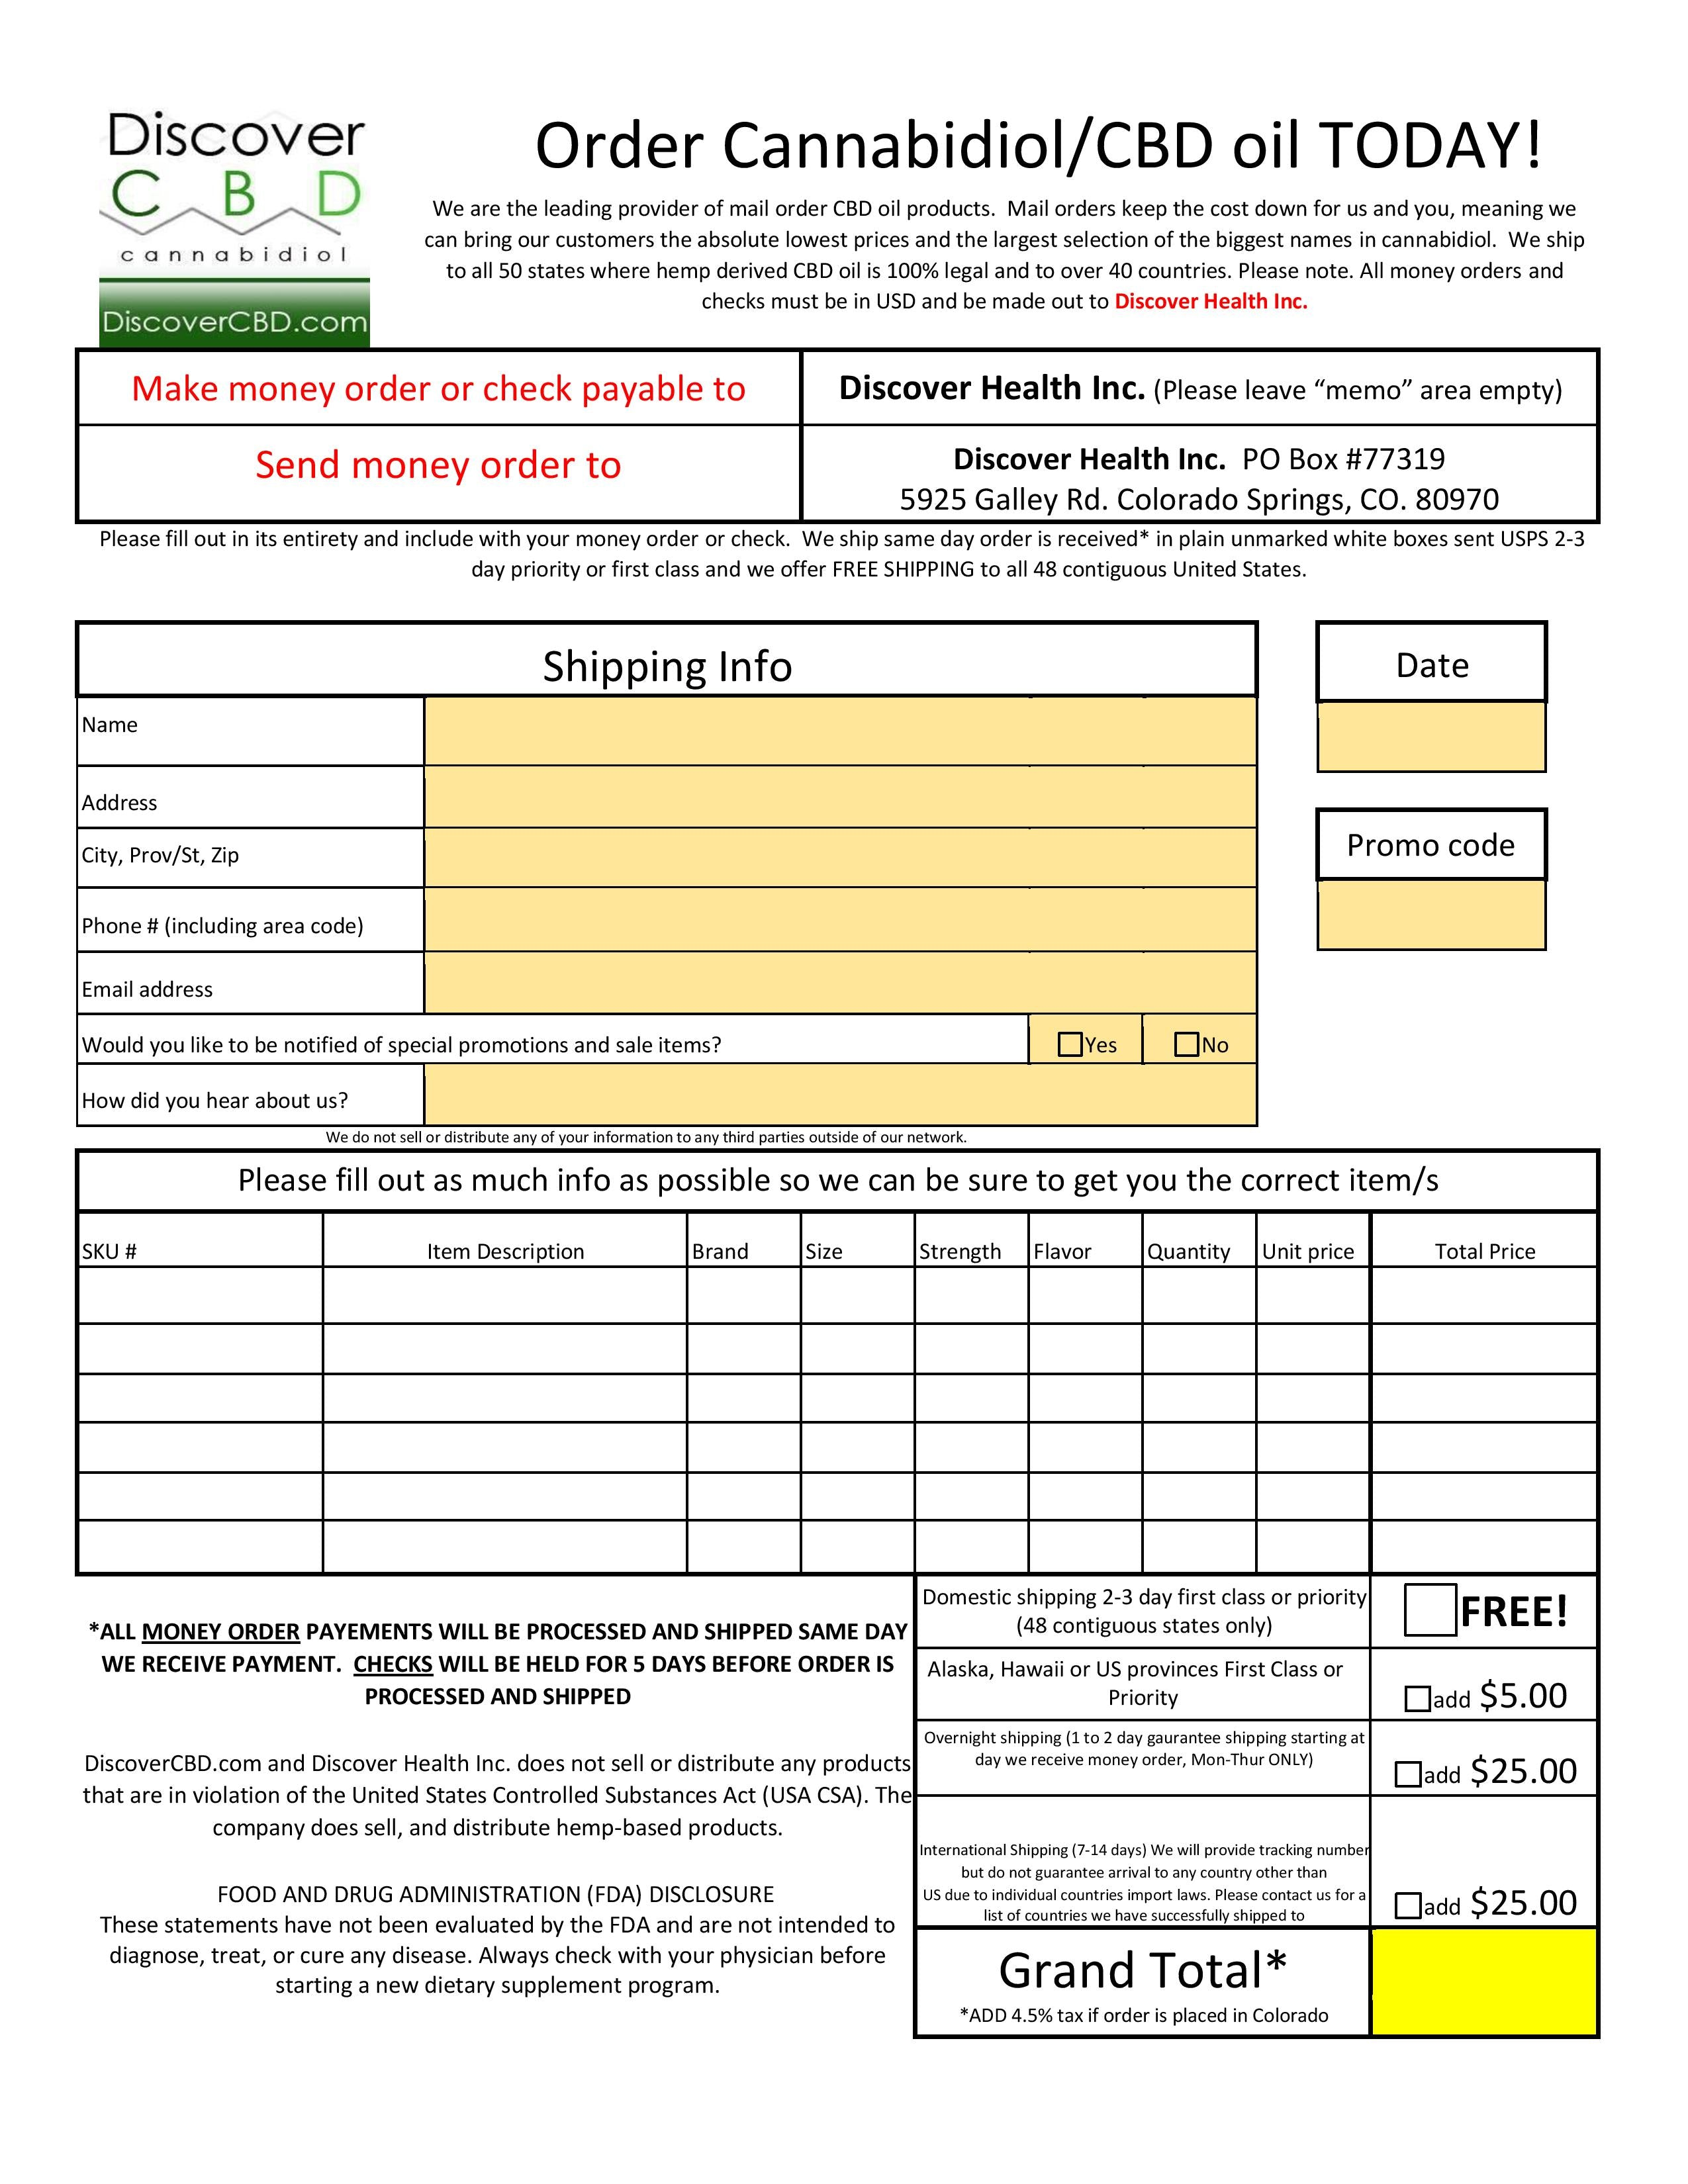 How To Fill Out A Check Money Order – Money Order Form